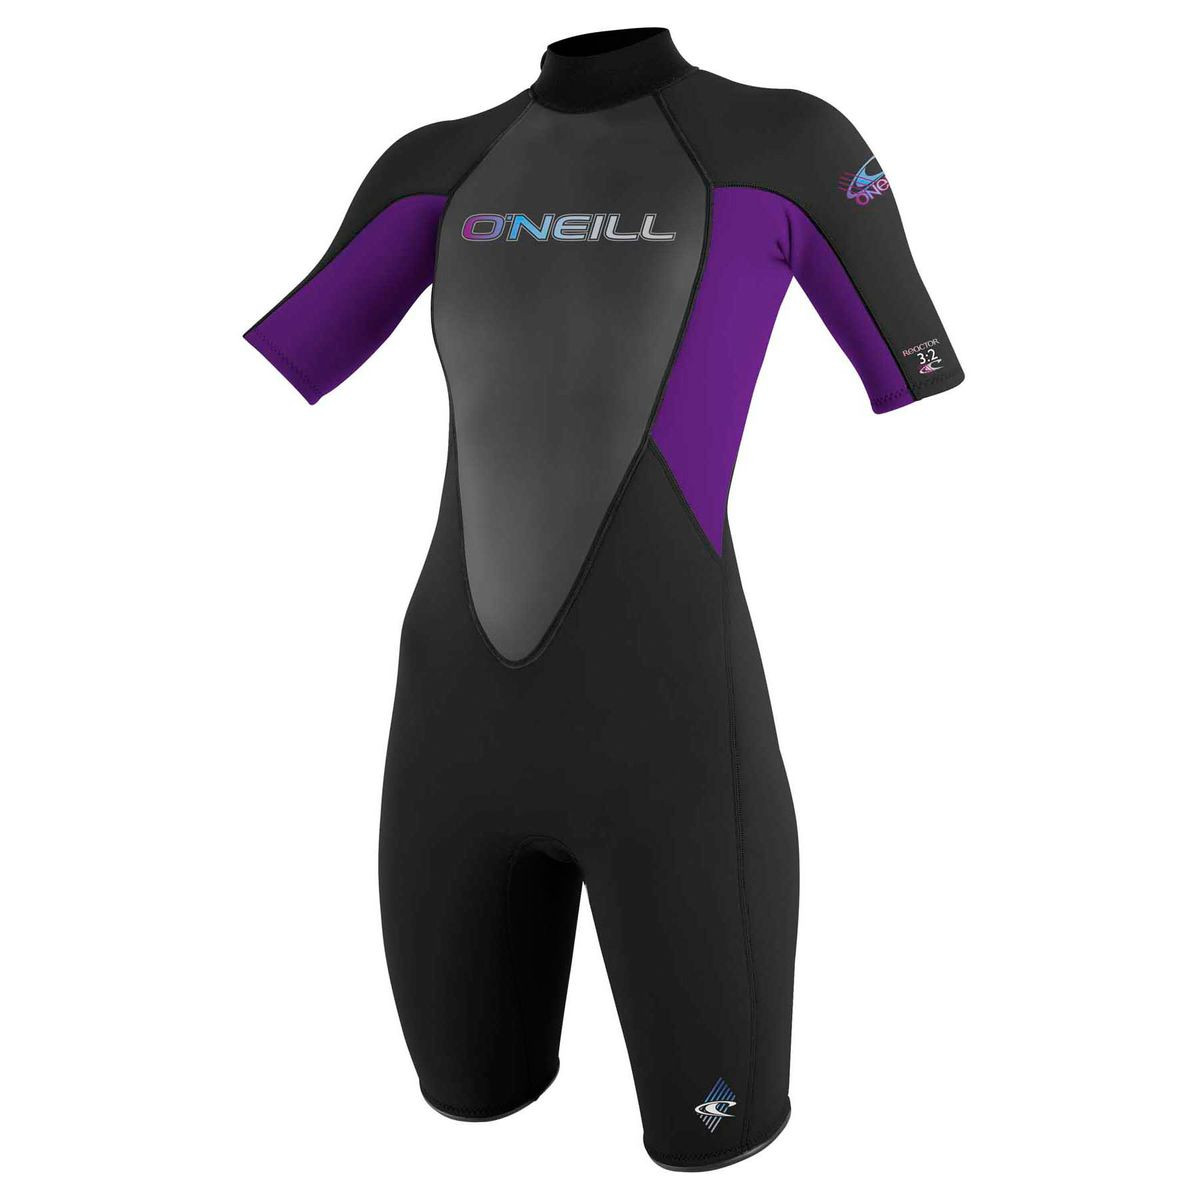 O'Neill Womens Reactor 2mm Short Sleeve Shorty Wetsuit - Black/ Black